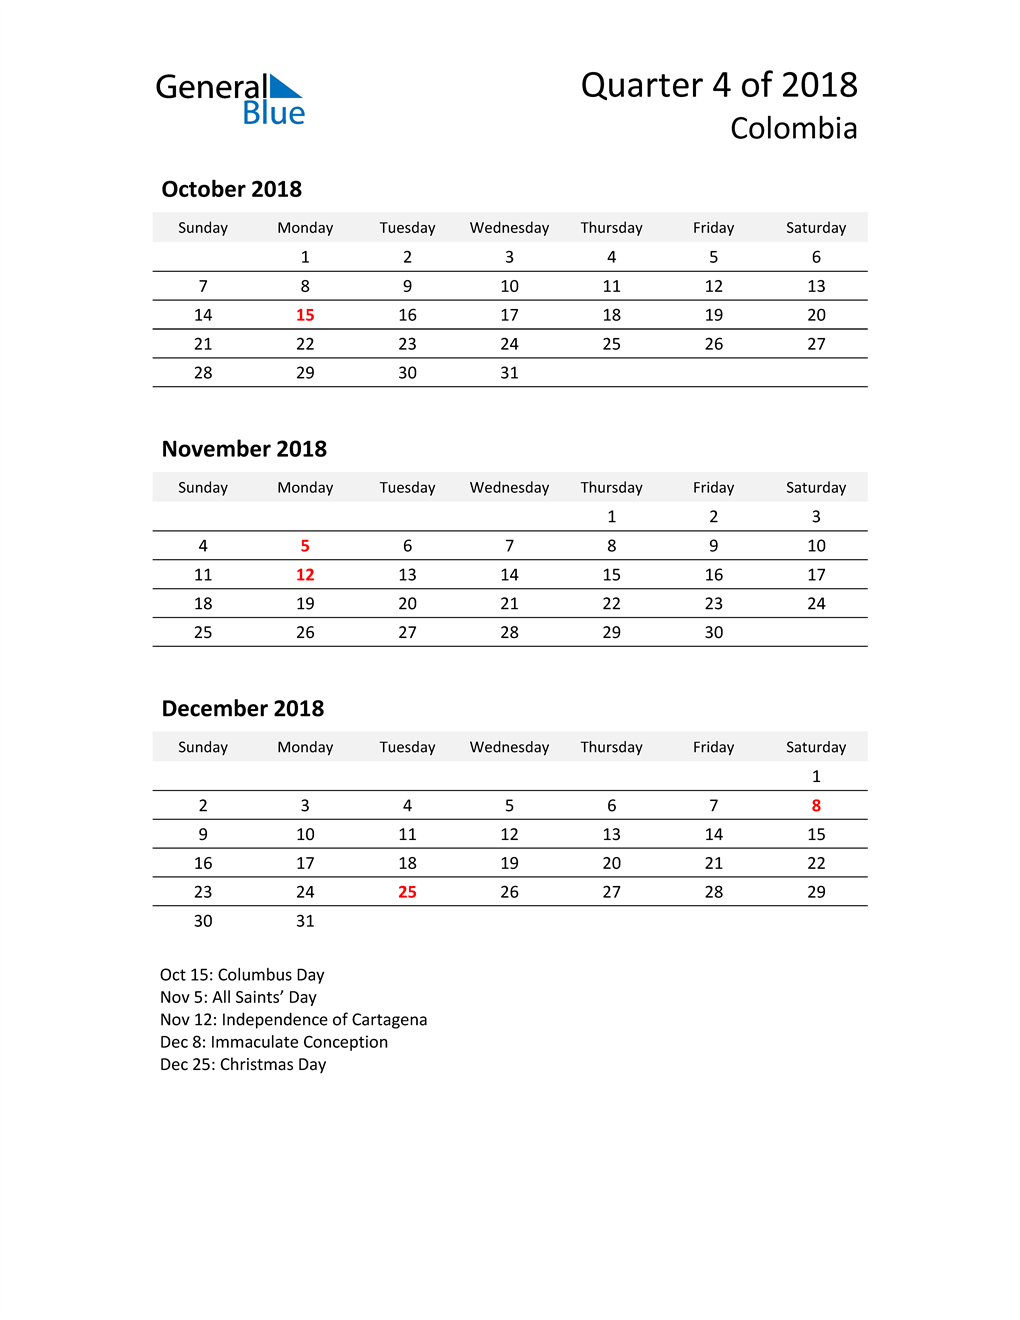 2018 Three-Month Calendar for Colombia